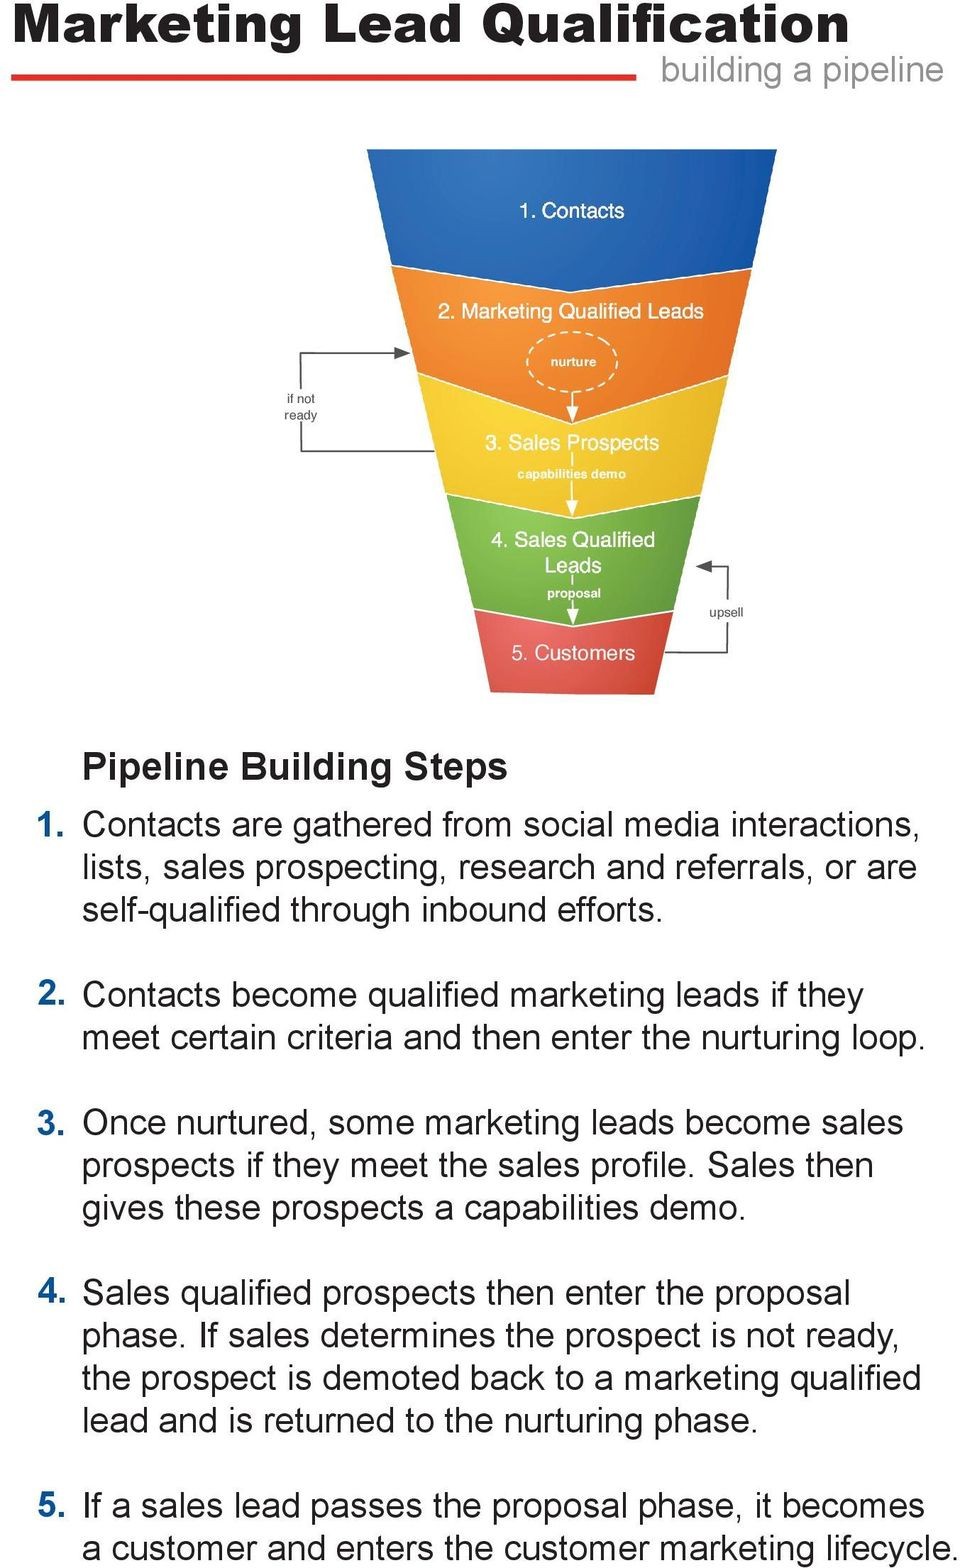 Contacts become qualified marketing leads if they meet certain criteria and then enter the nurturing loop. Once nurtured, some marketing leads become sales prospects if they meet the sales profile.